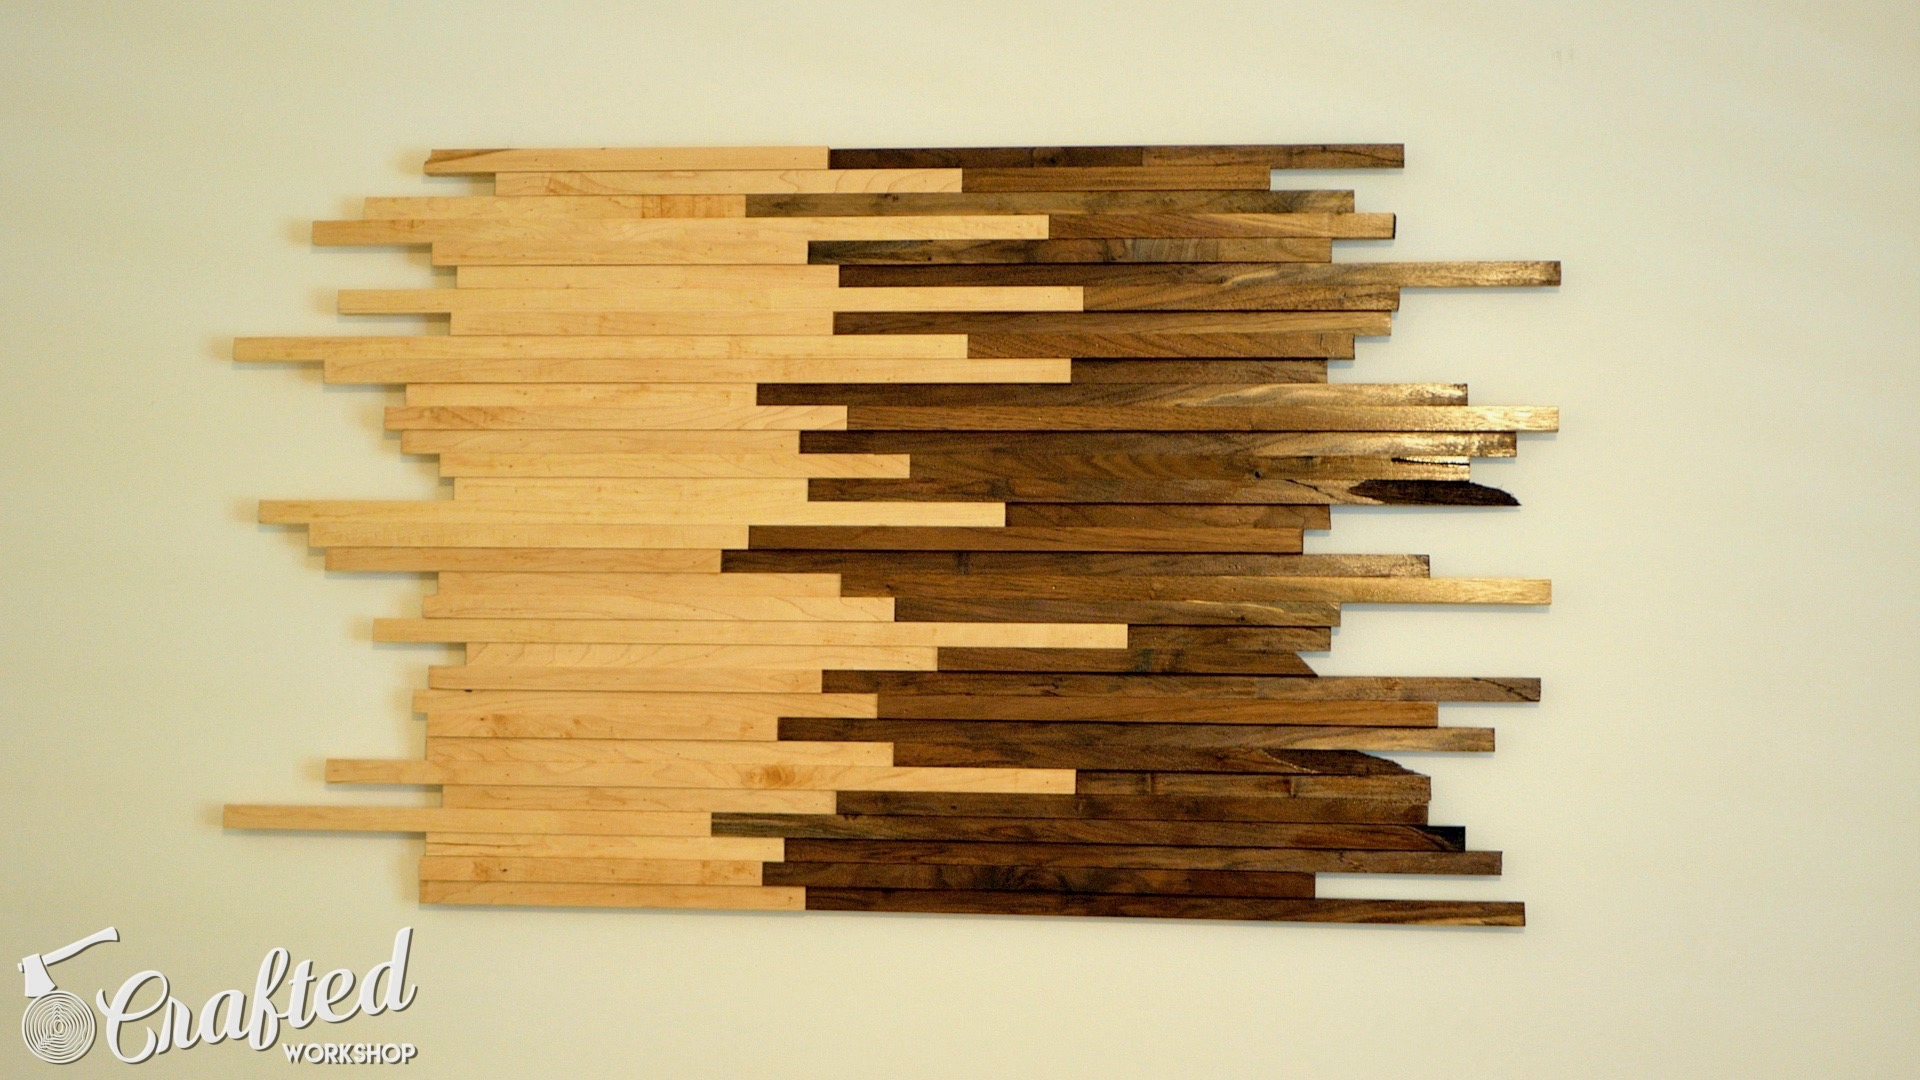 Scrap Wood Wall Art Made From Walnut & Maple | How To Build - Woodworking - 13.jpg